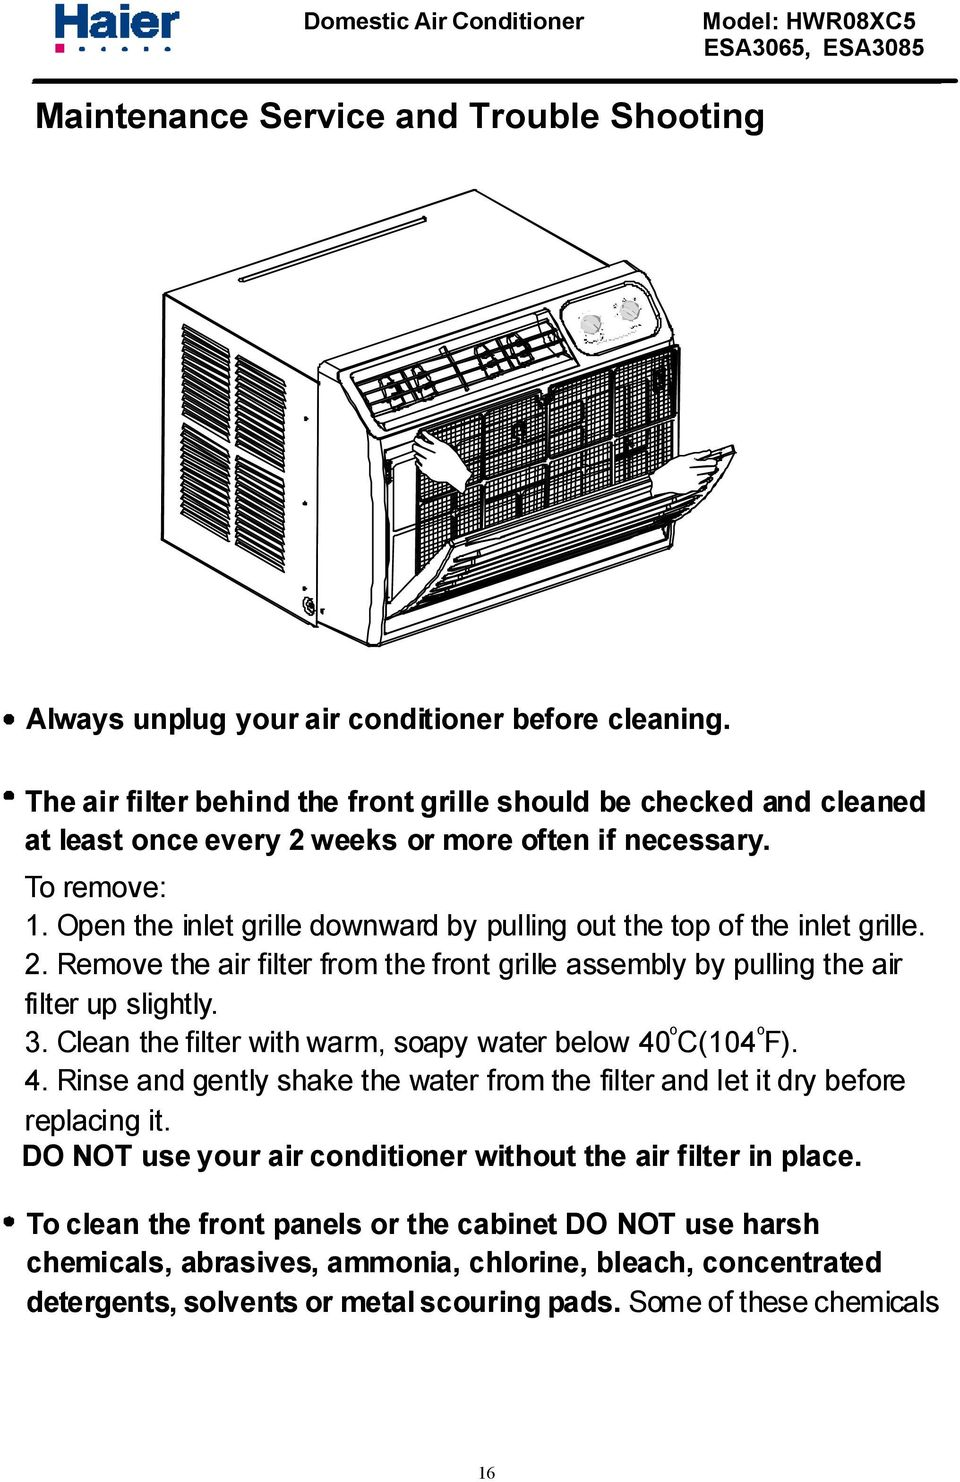 Haier Window Air Conditioner Wiring Diagram from docplayer.net